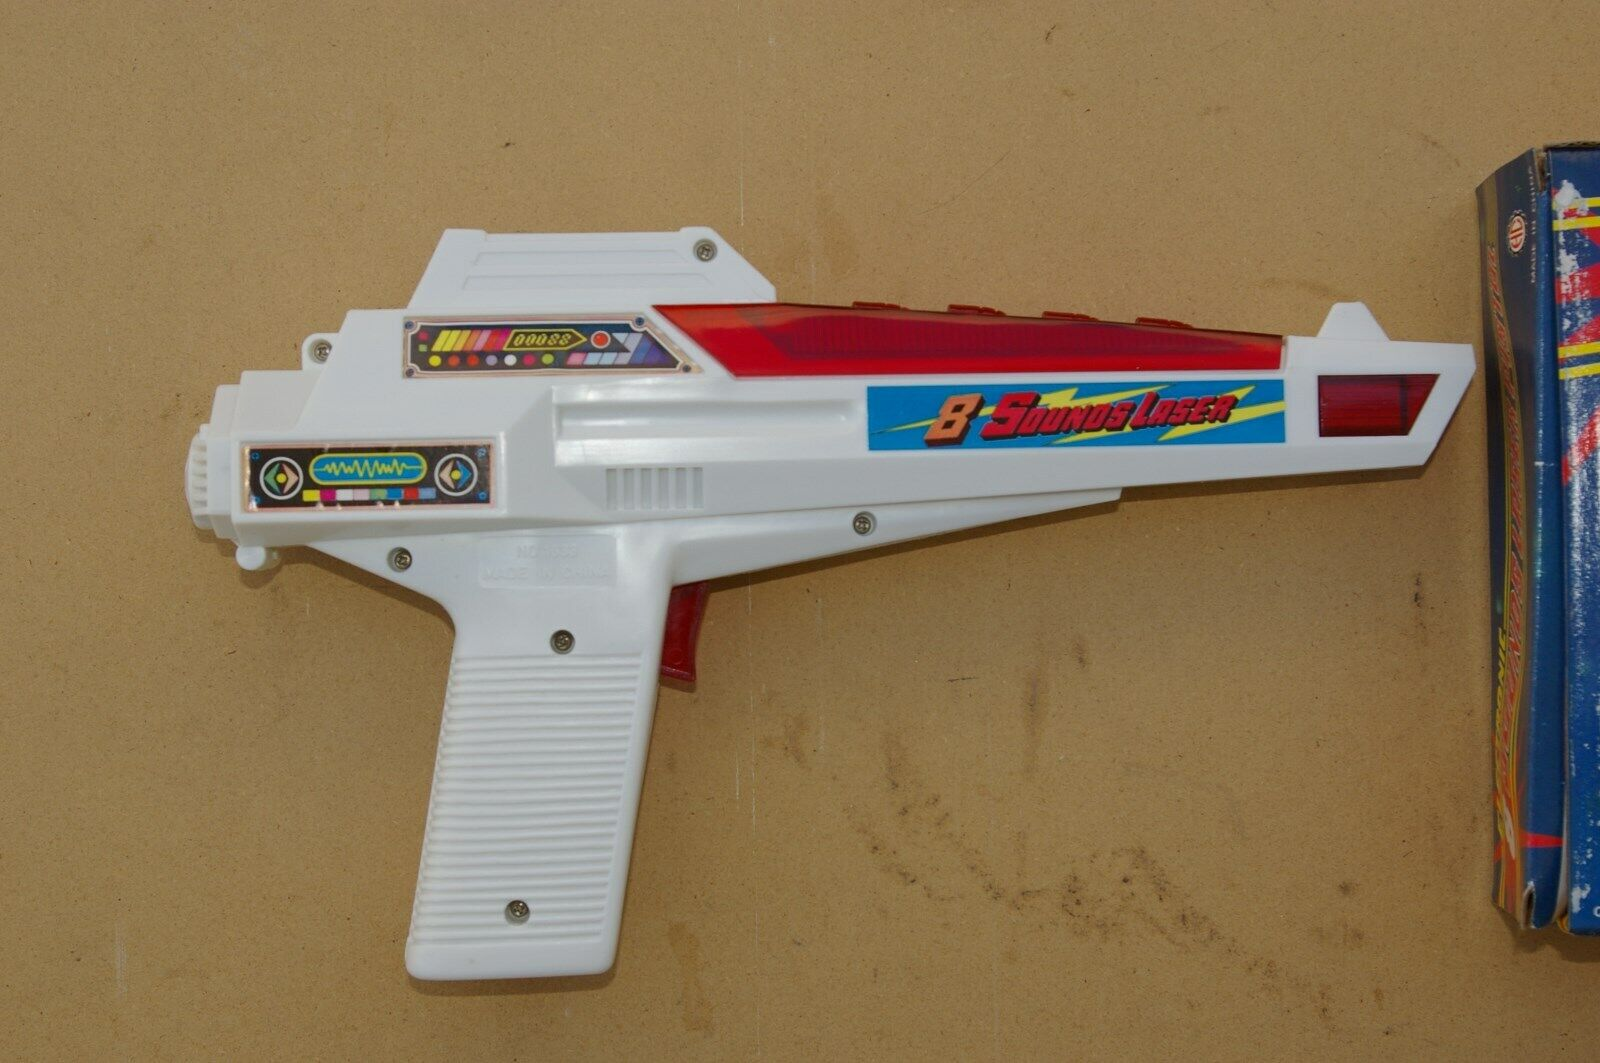 NEW SCIENCE FICTION '80's VINTAGE ELECTRONIC TOY GUN, 6 for $1